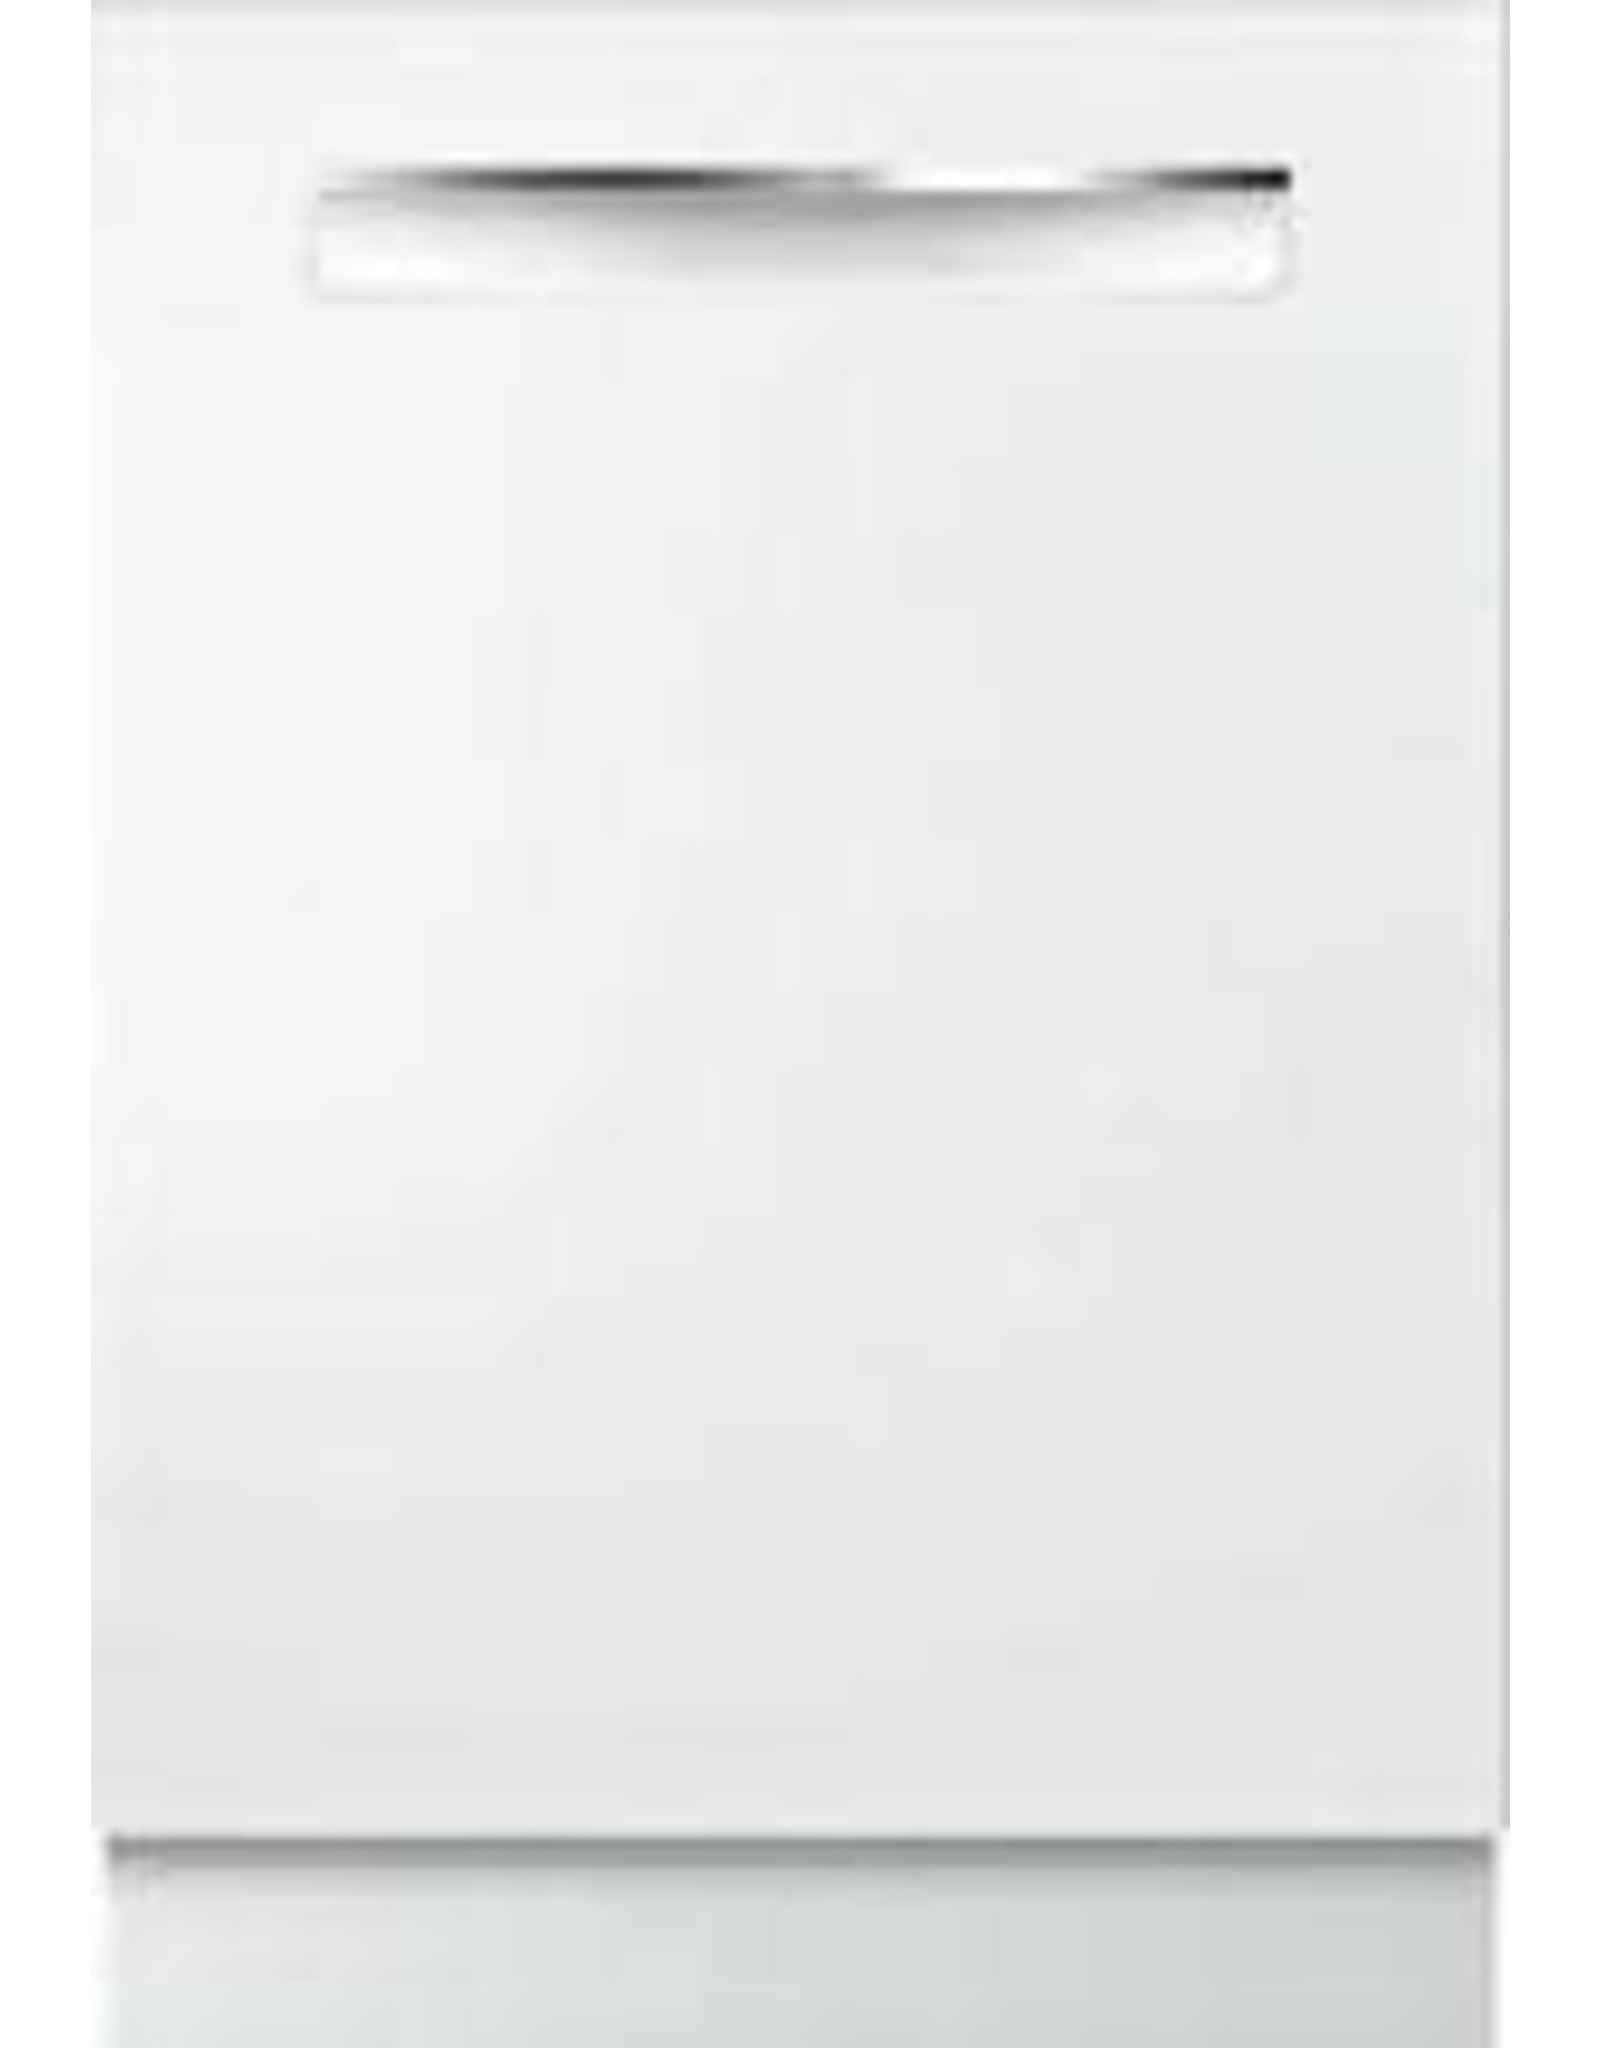 BOSCH SHPM65Z52N Bosch 500 Series Top Control Tall Tub Pocket Handle Dishwasher in White with Stainless Steel Tub, AutoAir, 44dBA